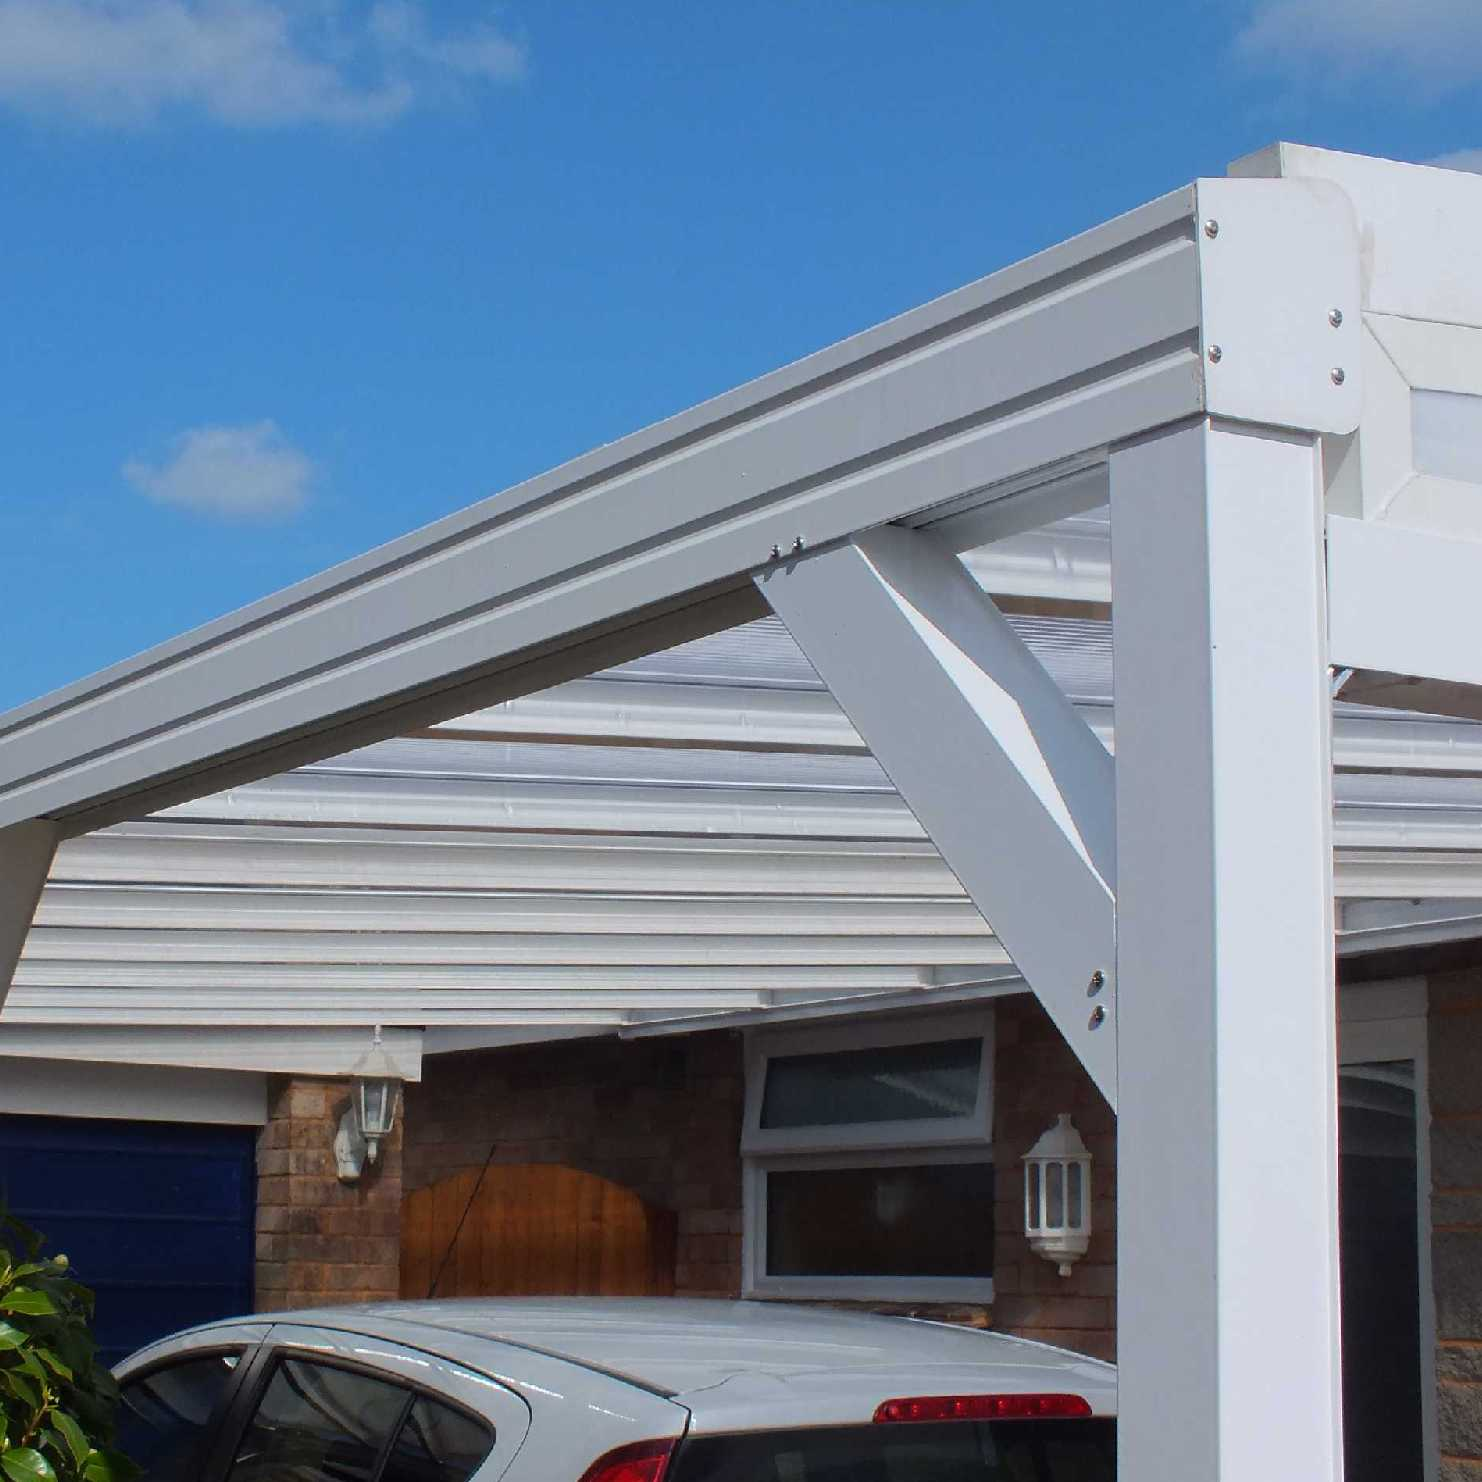 Great deals on Omega Smart White Lean-To Canopy with 16mm Polycarbonate Glazing - 6.0m (W) x 3.5m (P), (3) Supporting Posts